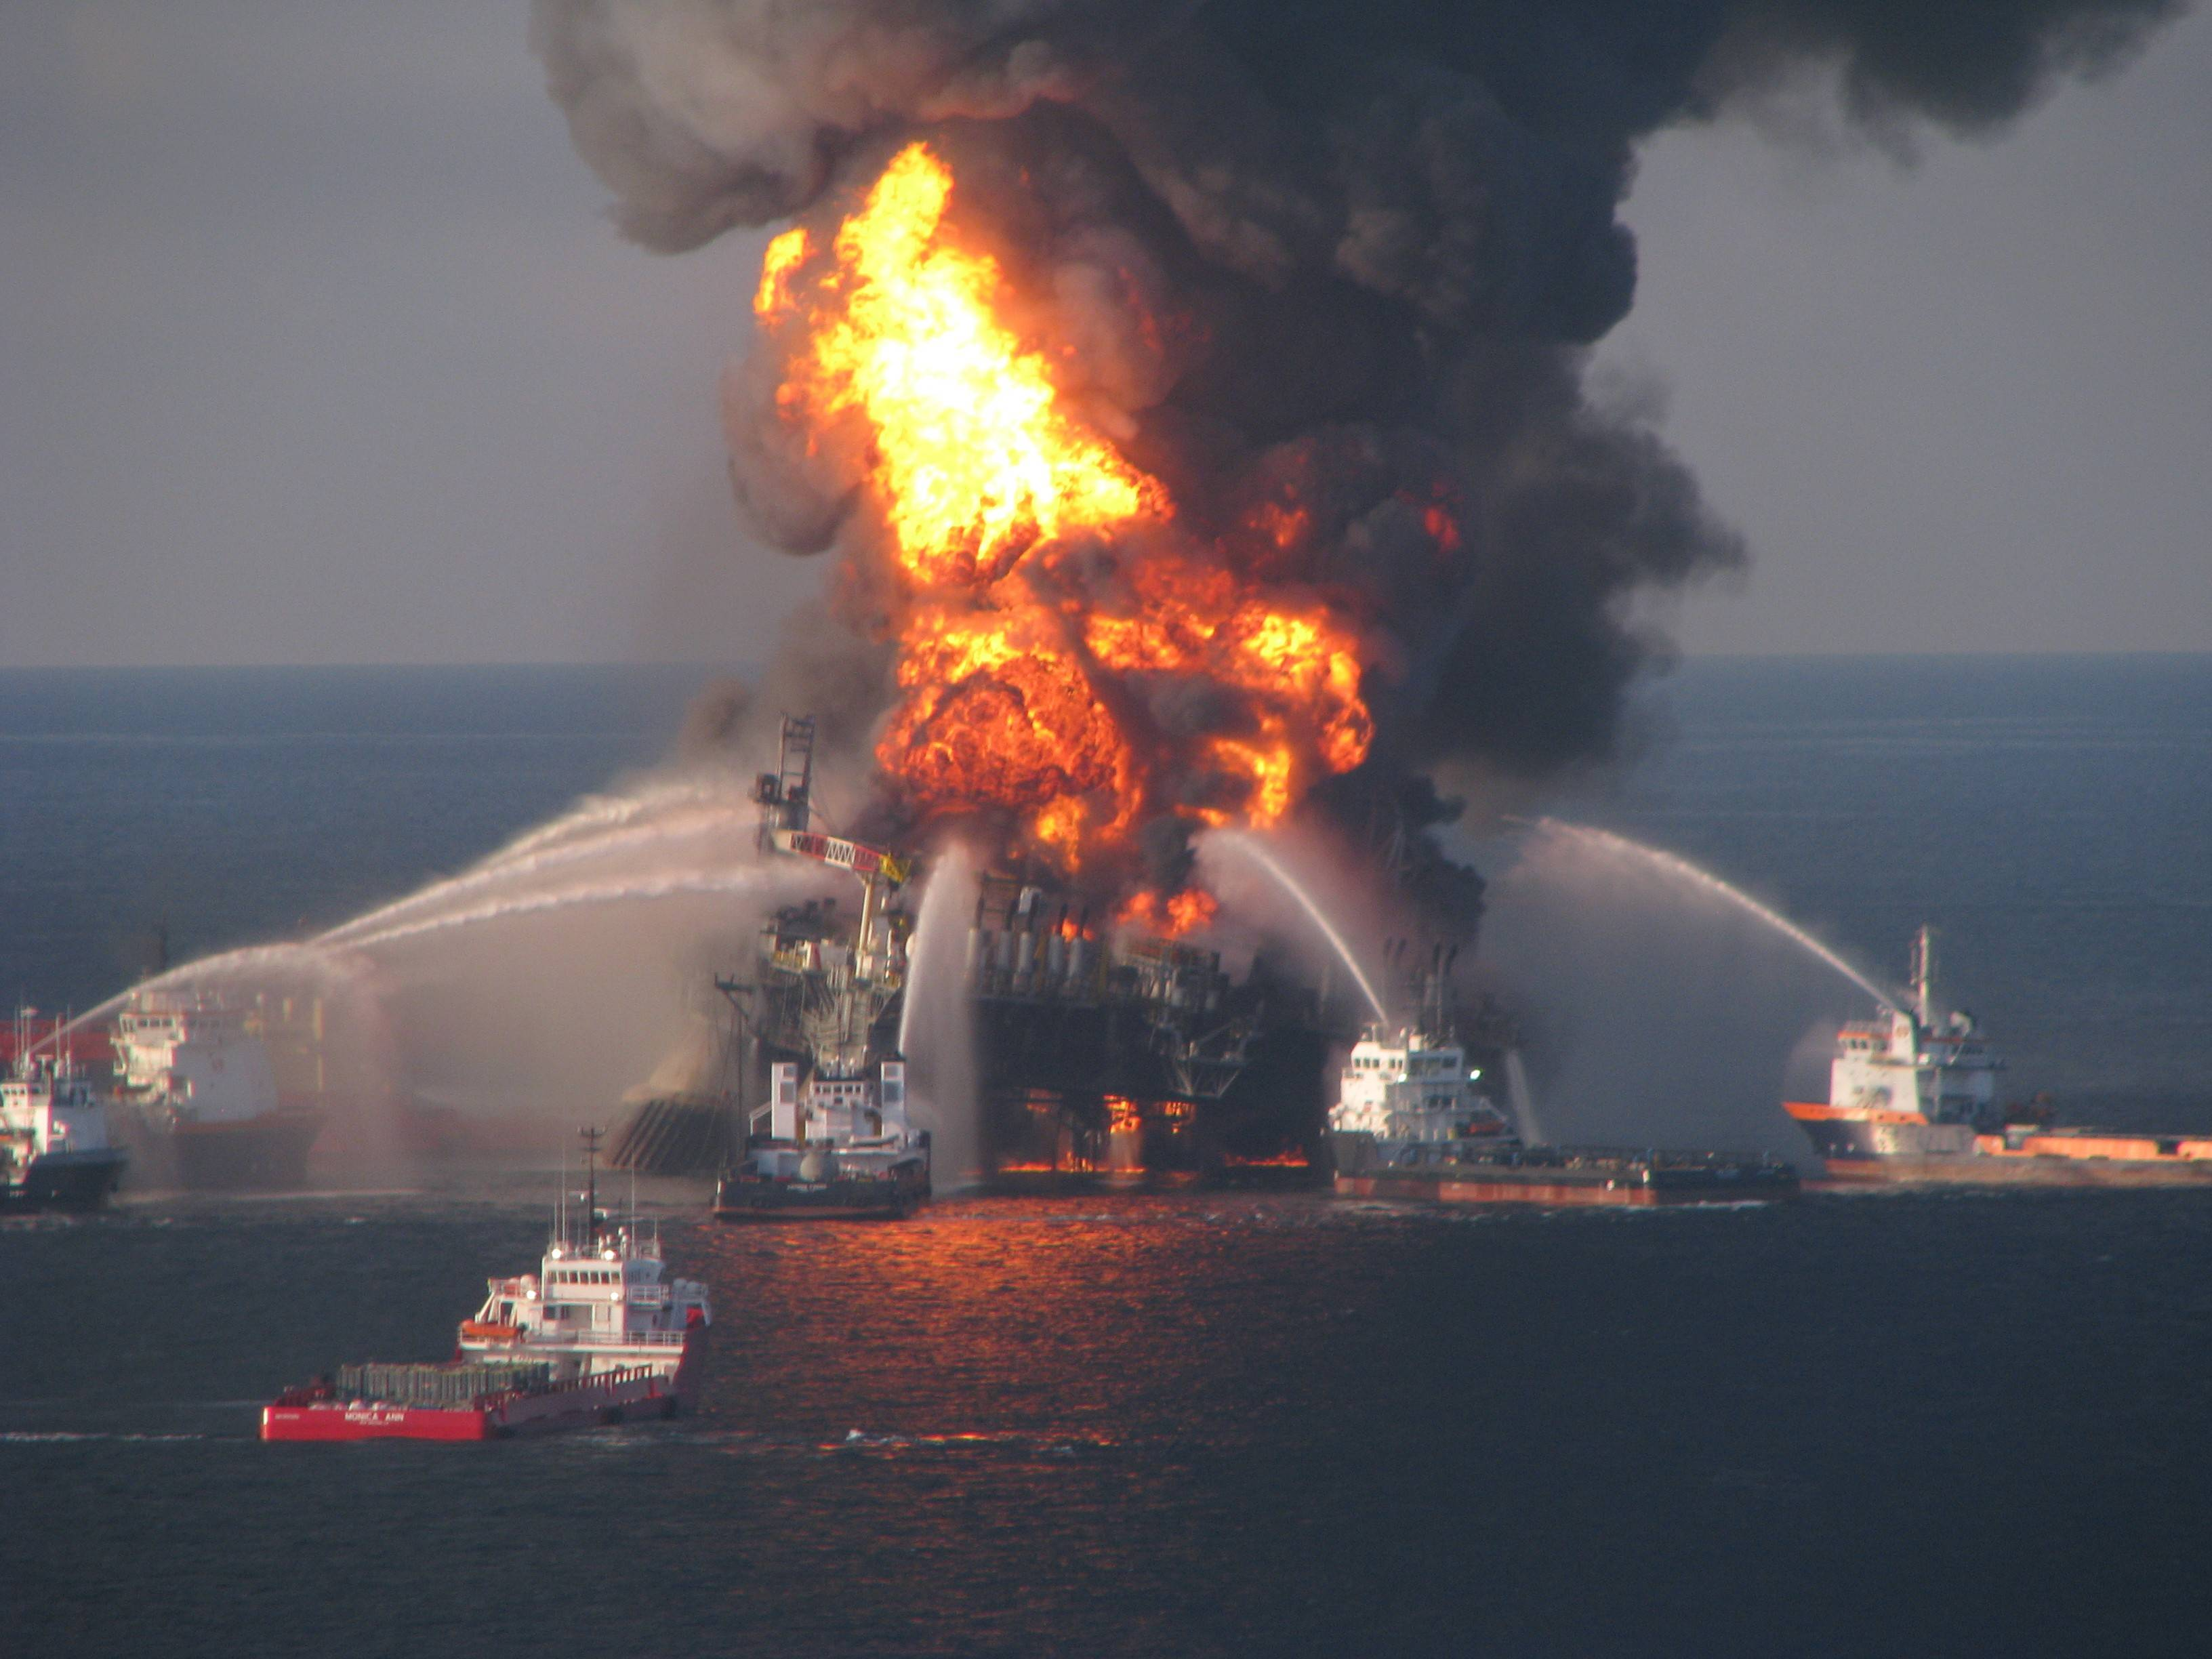 Crews battle the blazing remnants of the off shore oil rig Deepwater Horizon in 2010. BP PLC already has agreed to pay billions of dollars in criminal fines and compensation to people and businesses affected by the disaster. But U.S. District Judge Carl Barbier's ruling could nearly quadruple what the London-based company has to pay in civil fines for polluting the Gulf of Mexico during the 2010 spill.